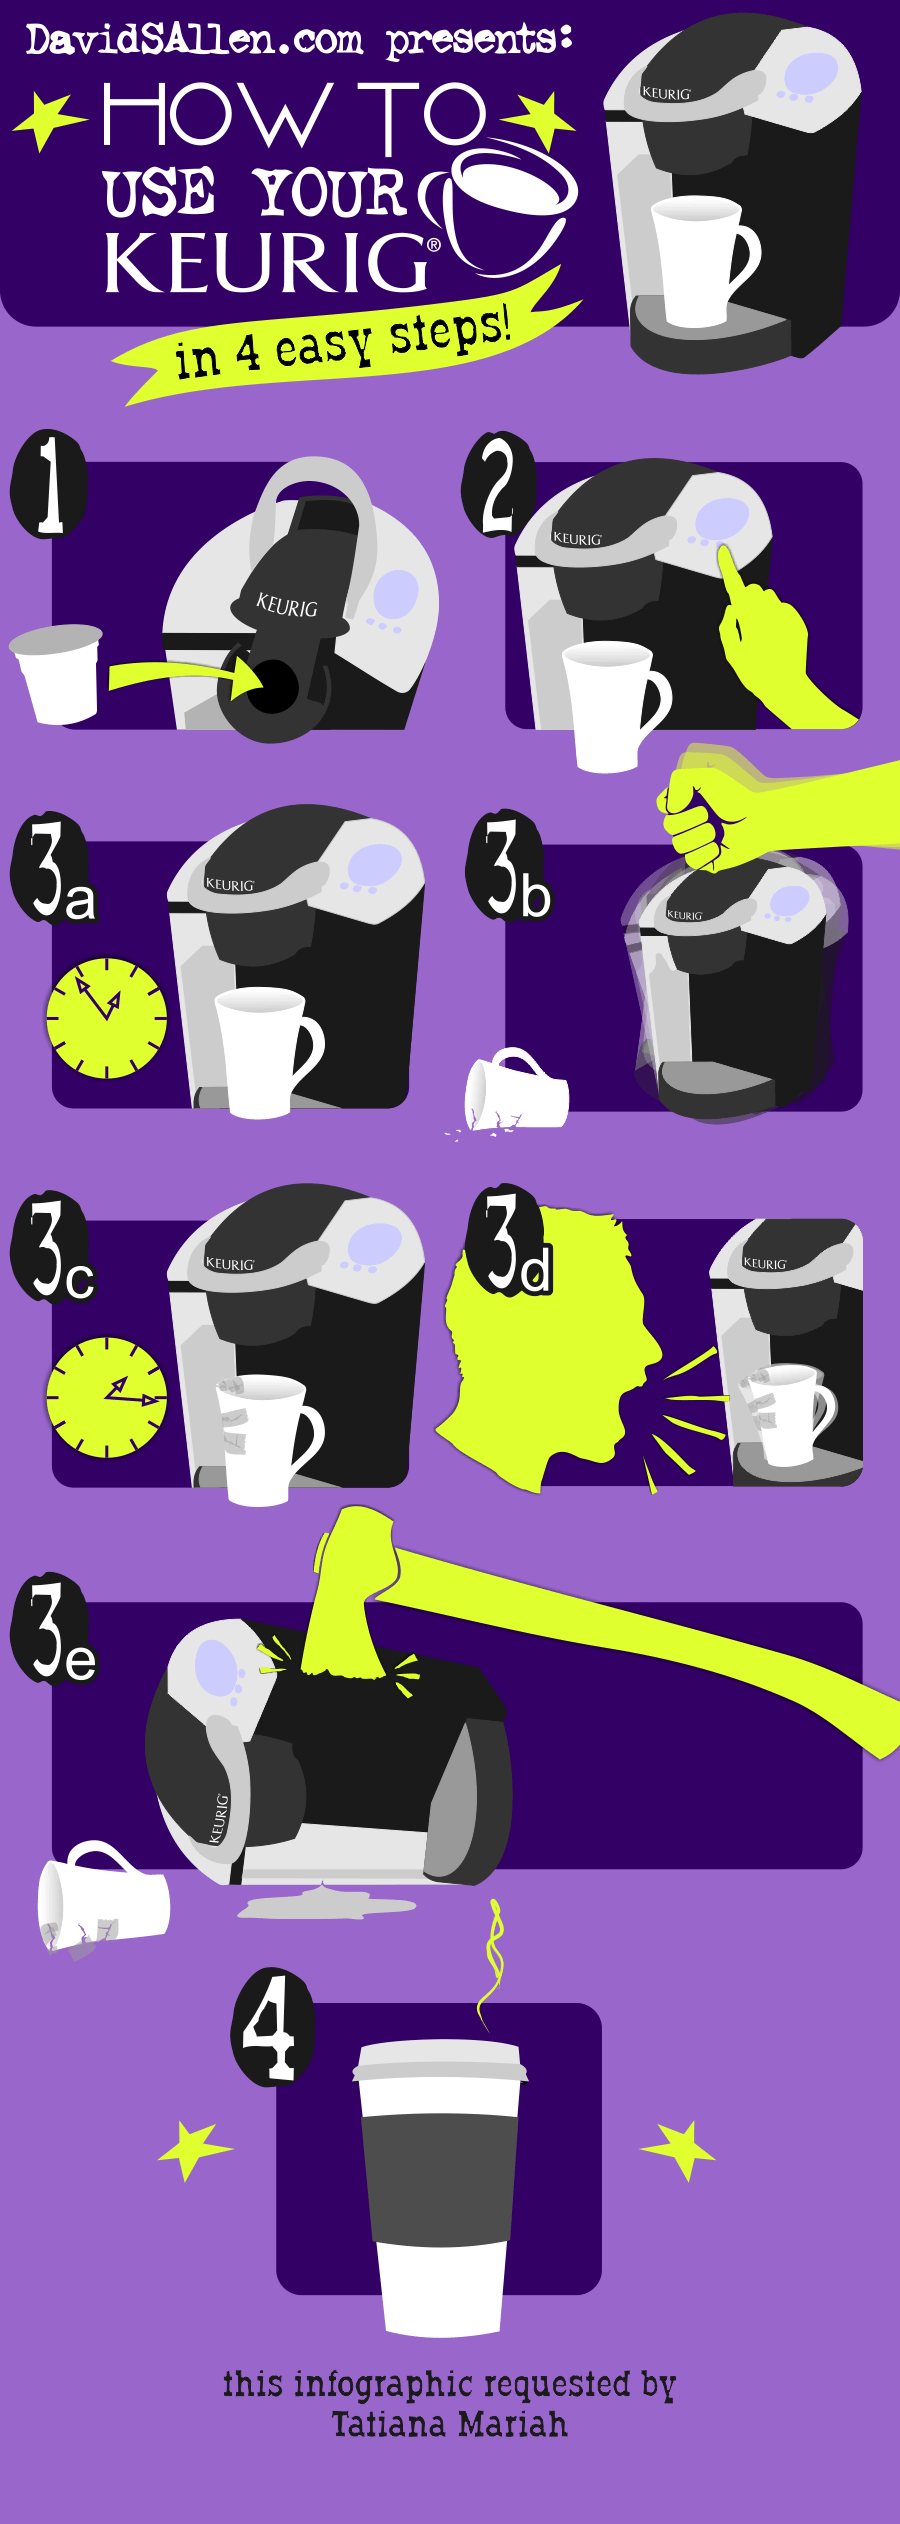 How to Use Your Keurig in 4 Easy Steps